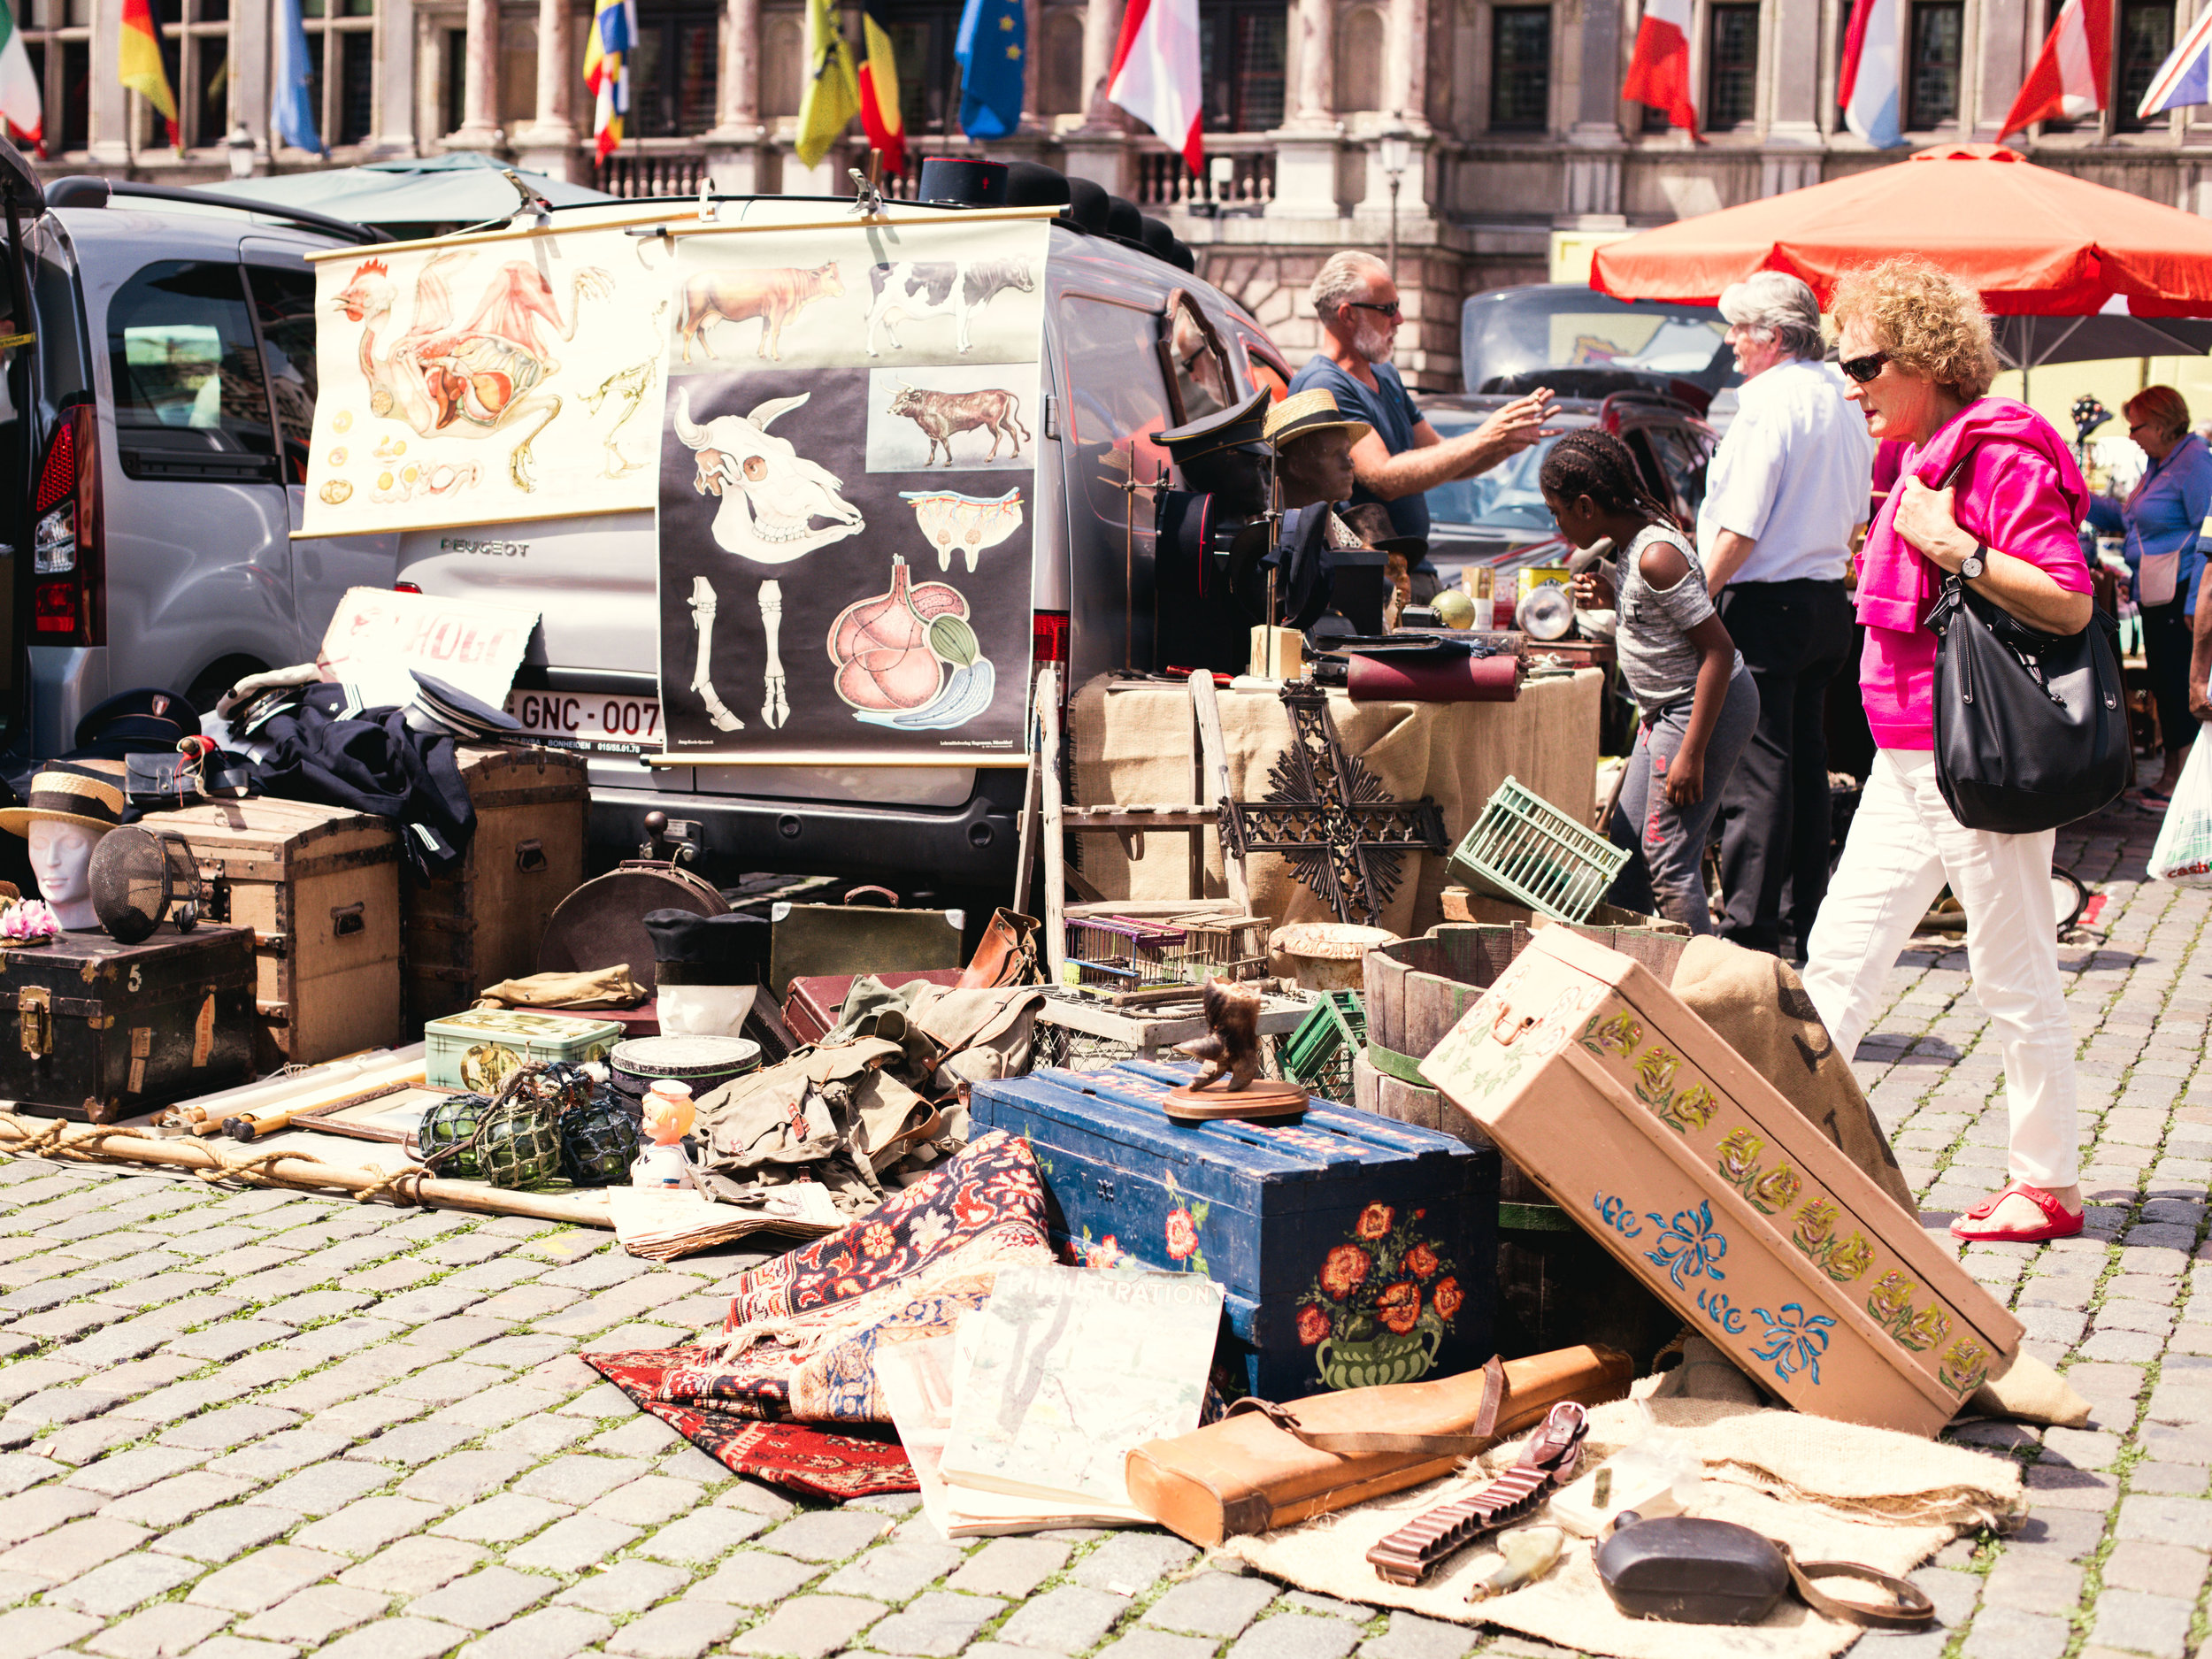 Antwerp-City-Scenes-4.jpg